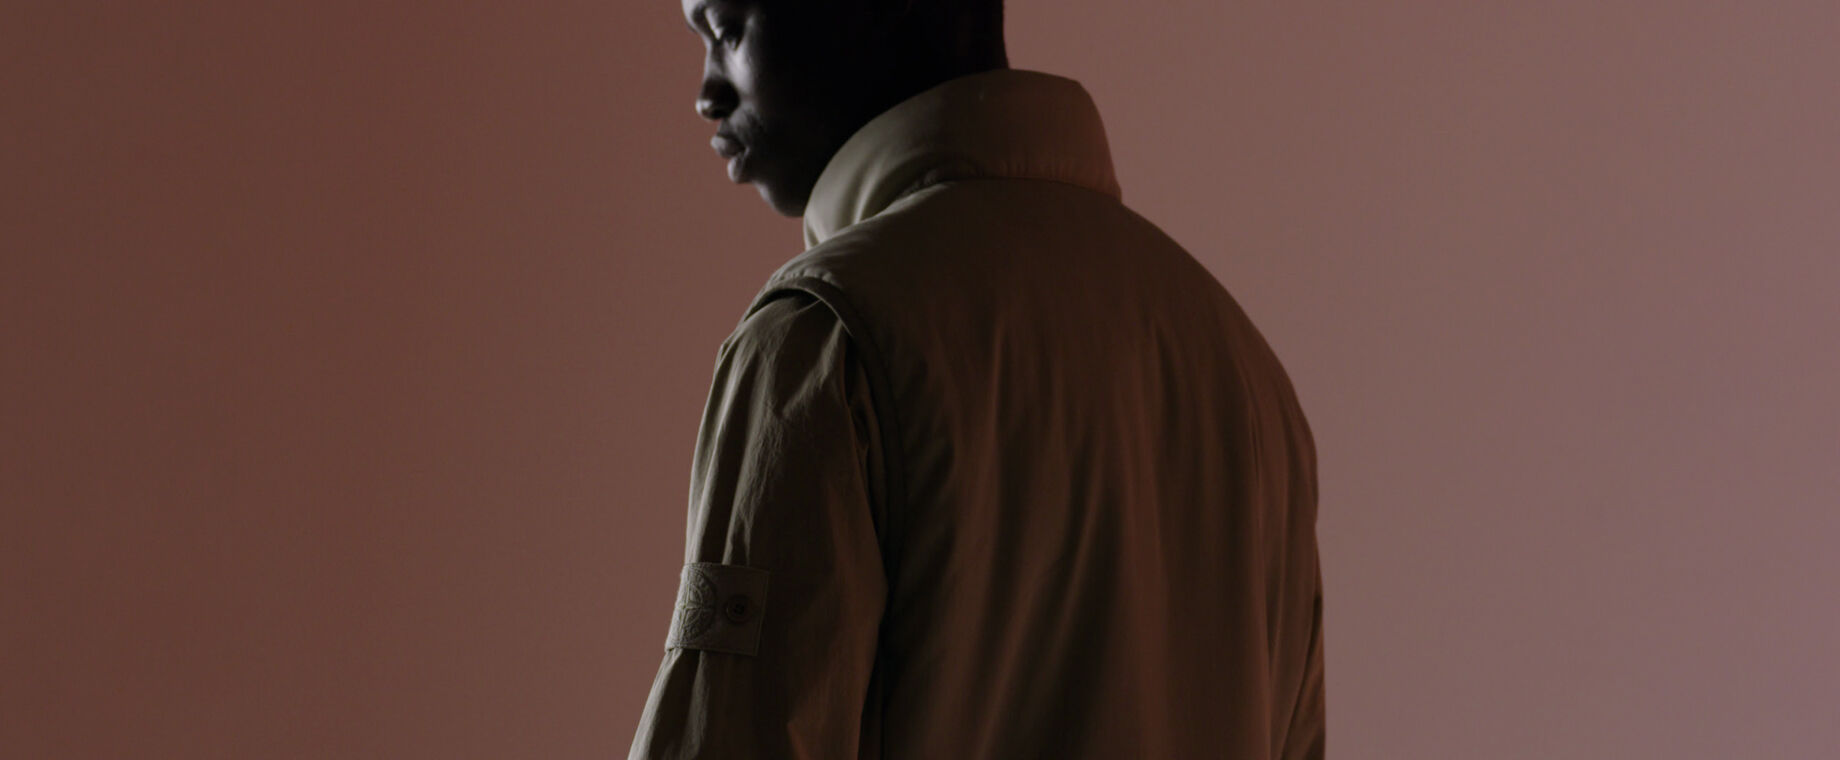 Close up shot of model in dim light, wearing a beige vest with standing collar over a top with the Stone Island ghost badge on the upper left arm.